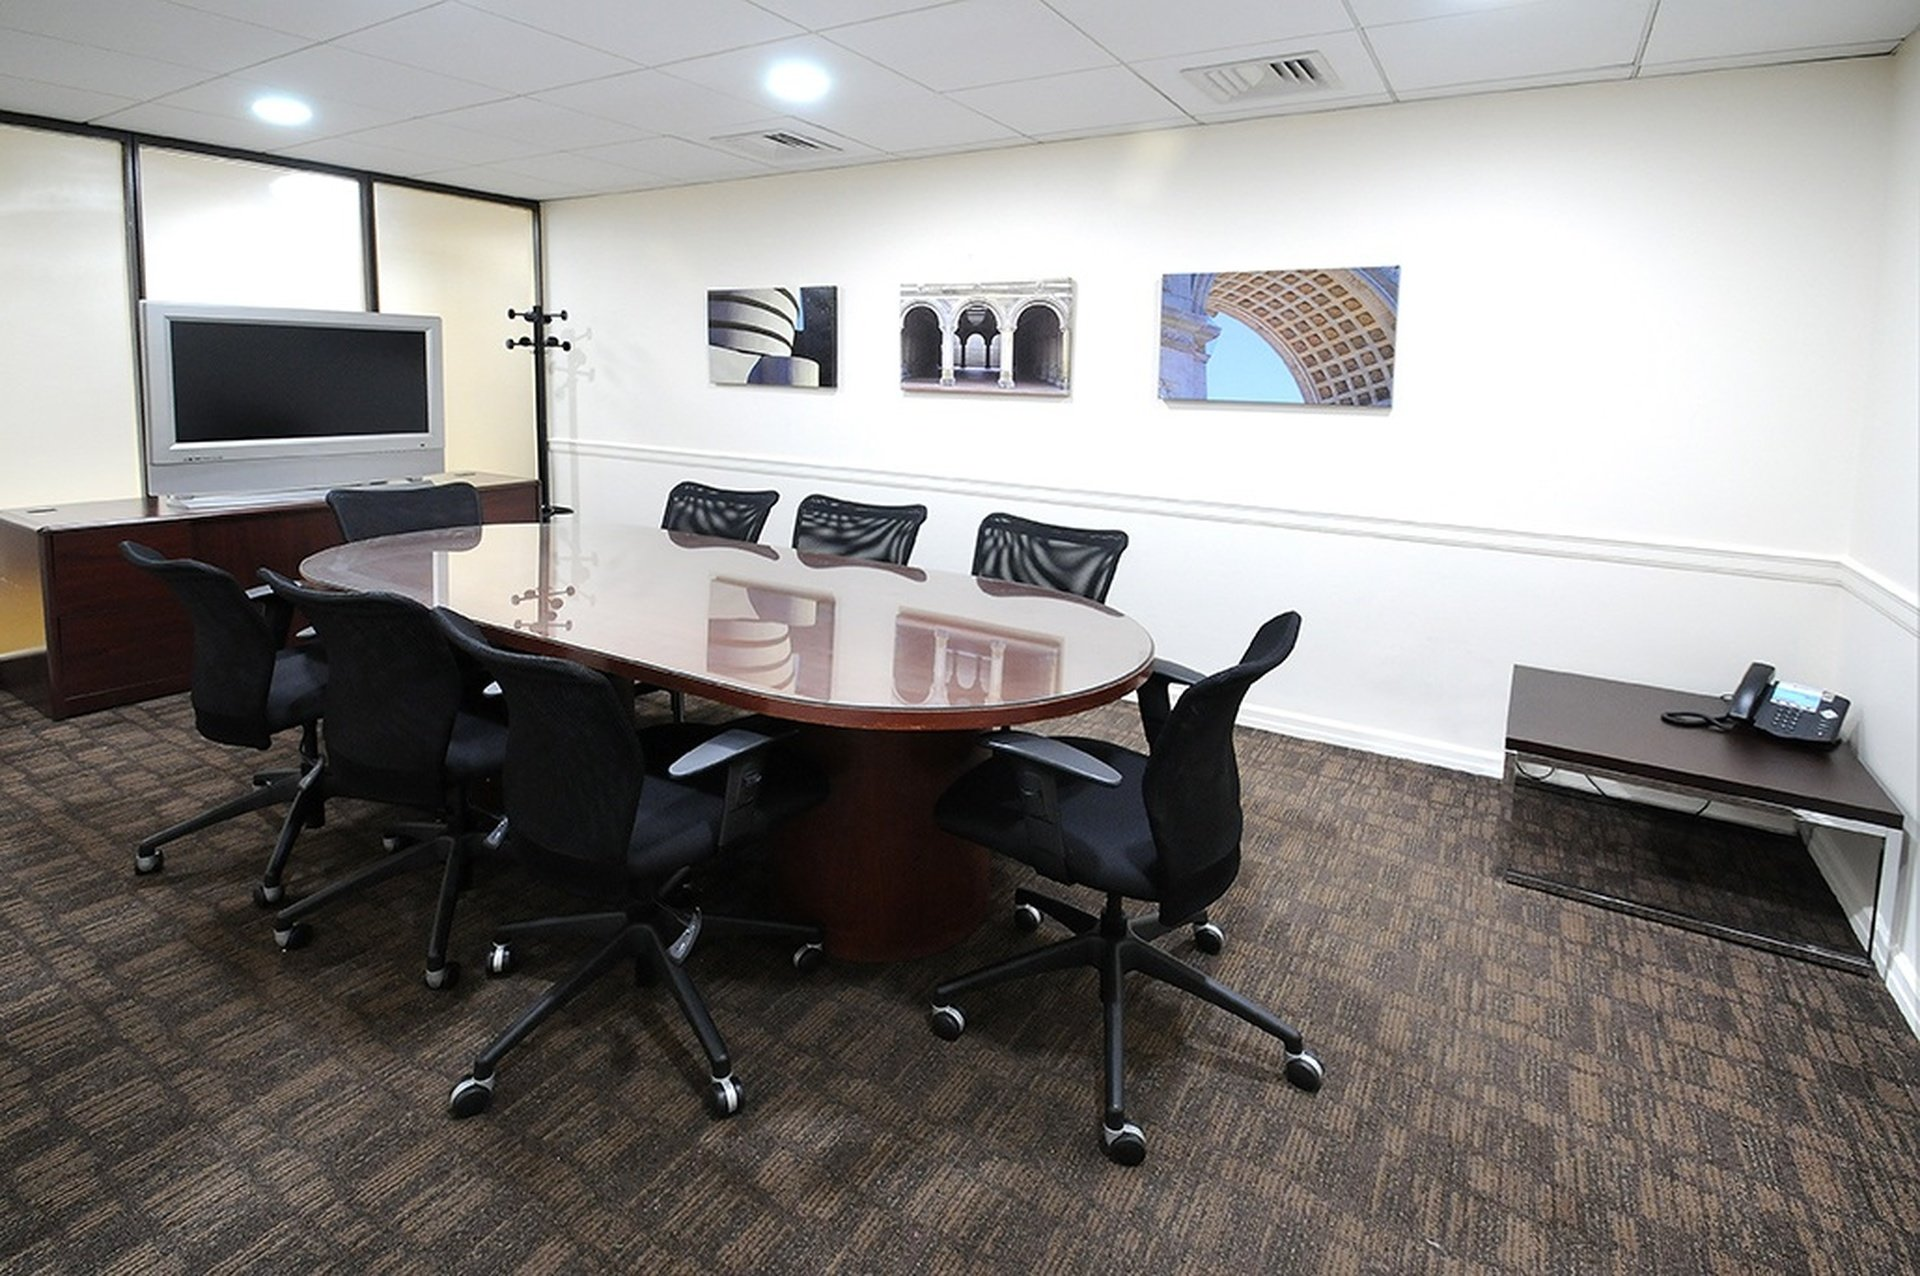 NYC conference rooms Meetingraum Prime Office Centers 5th Avenue - room B image 0